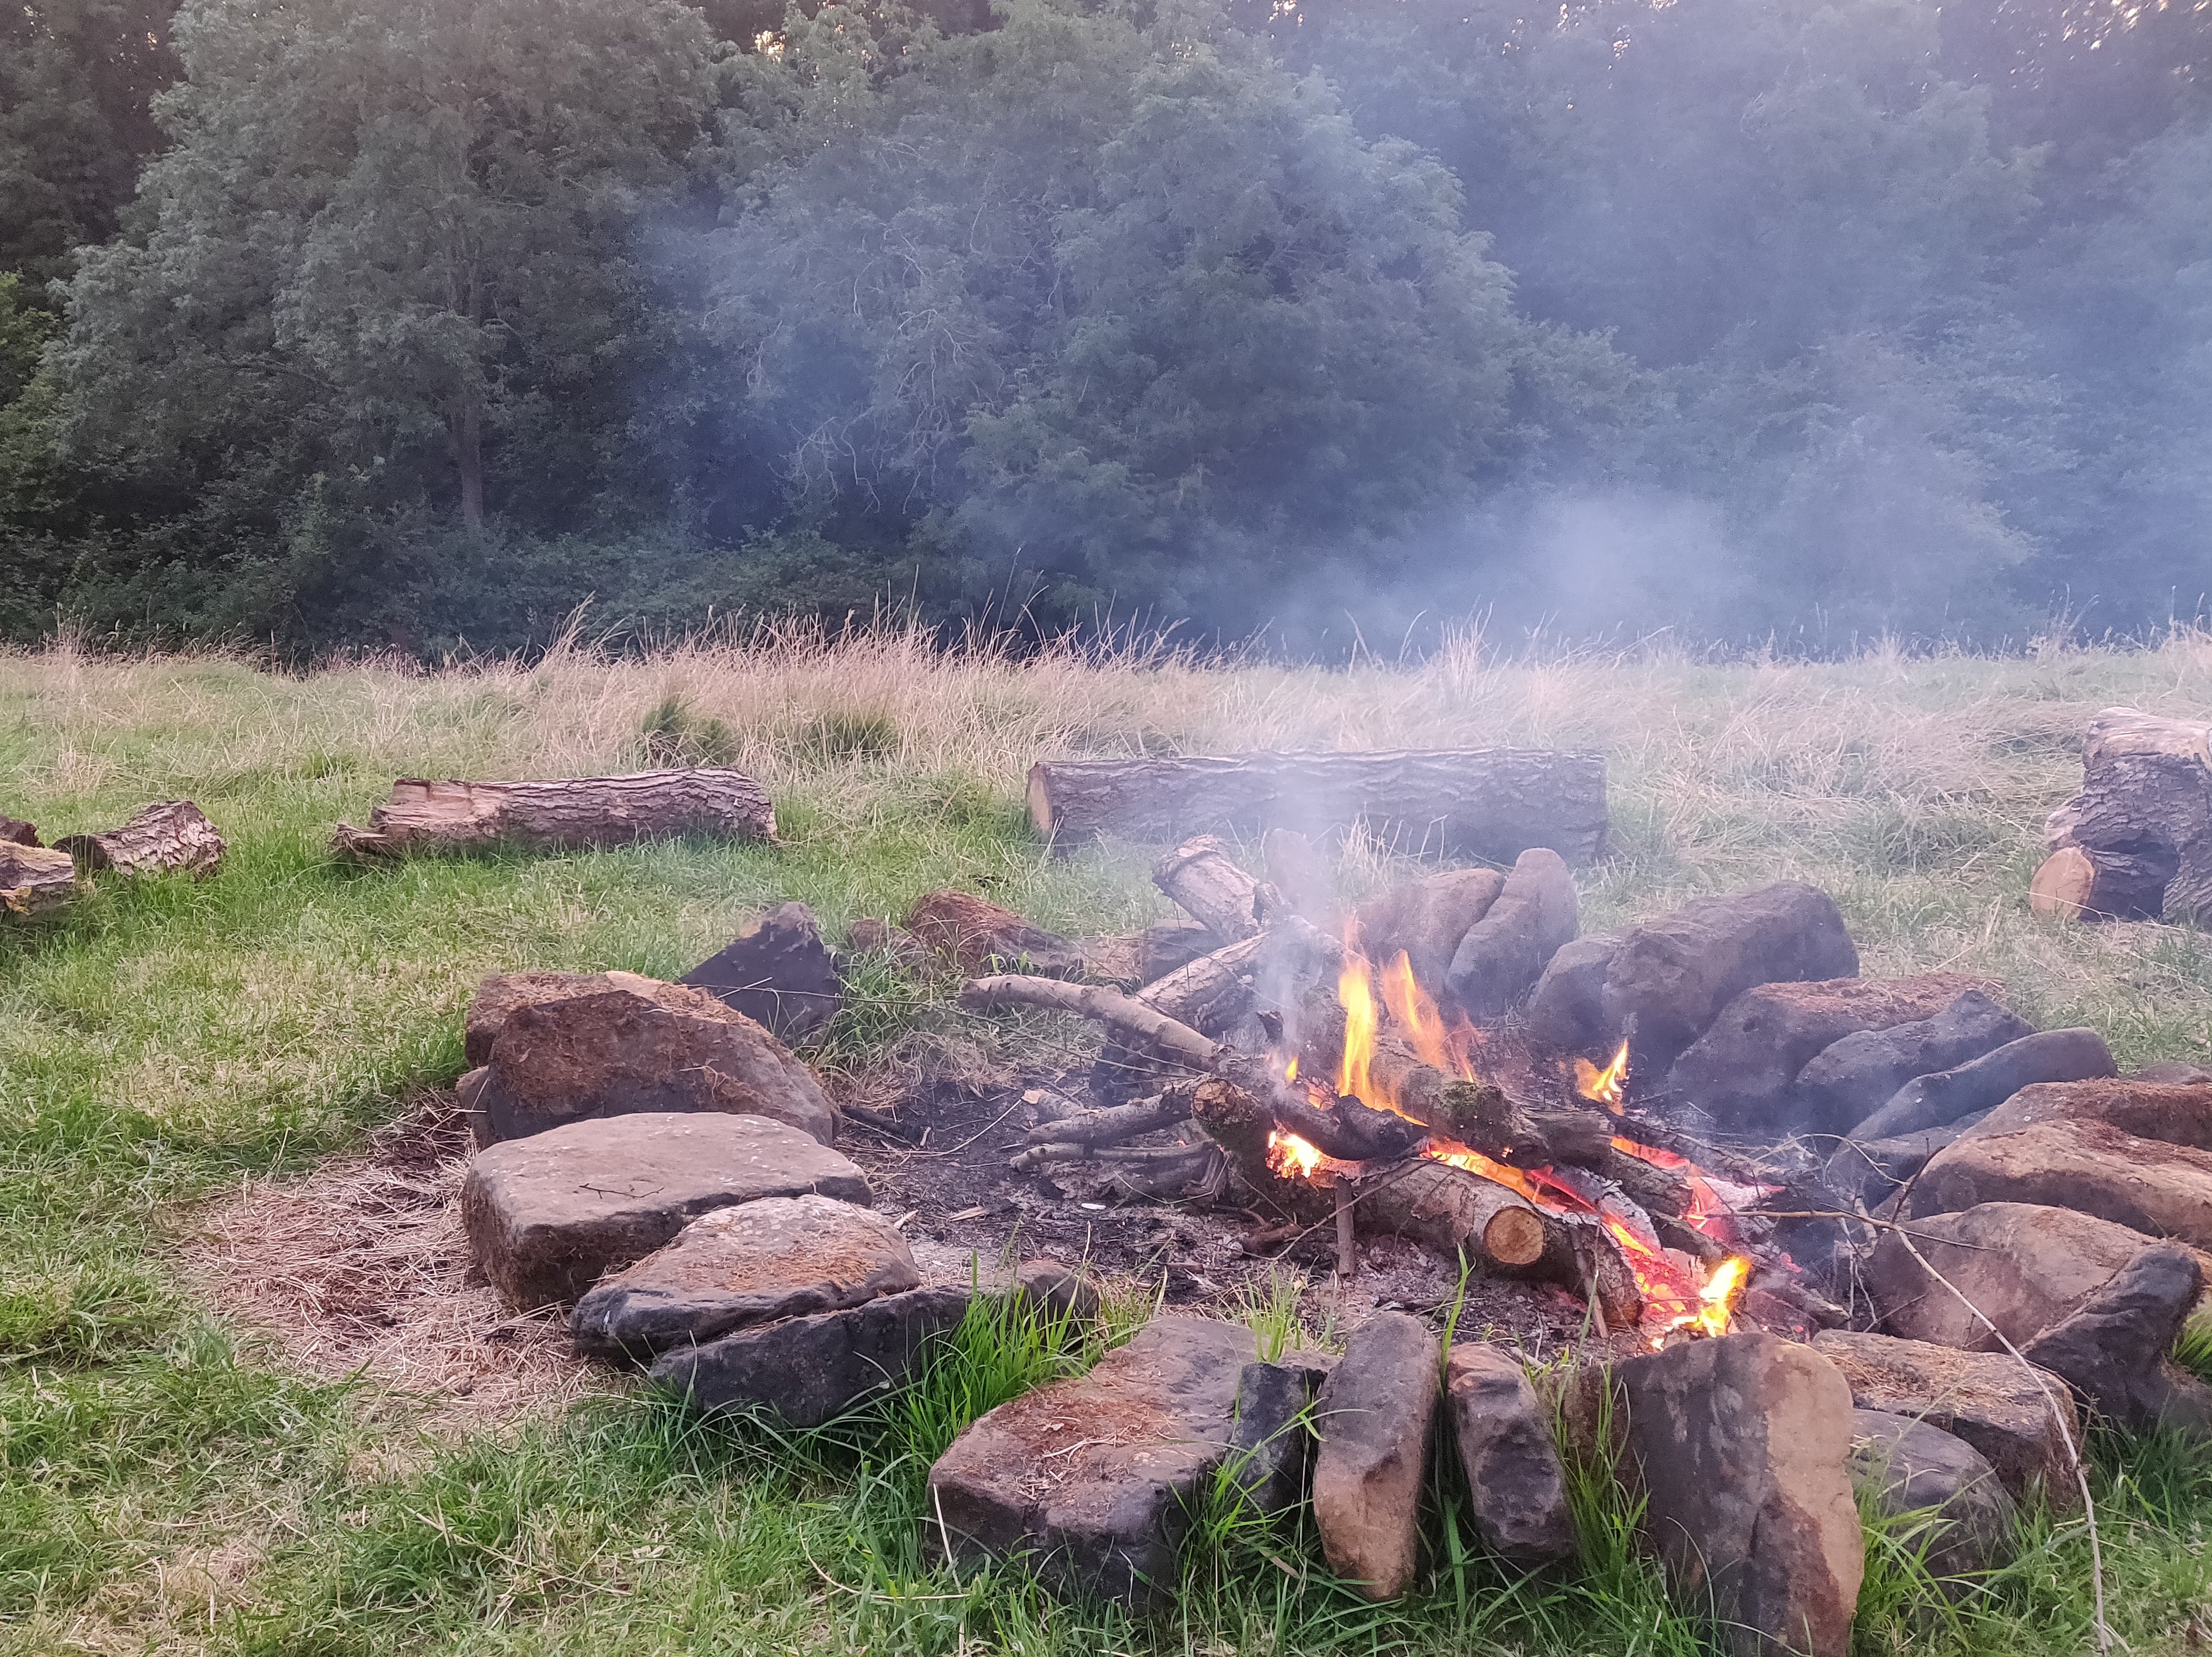 The firepit in action